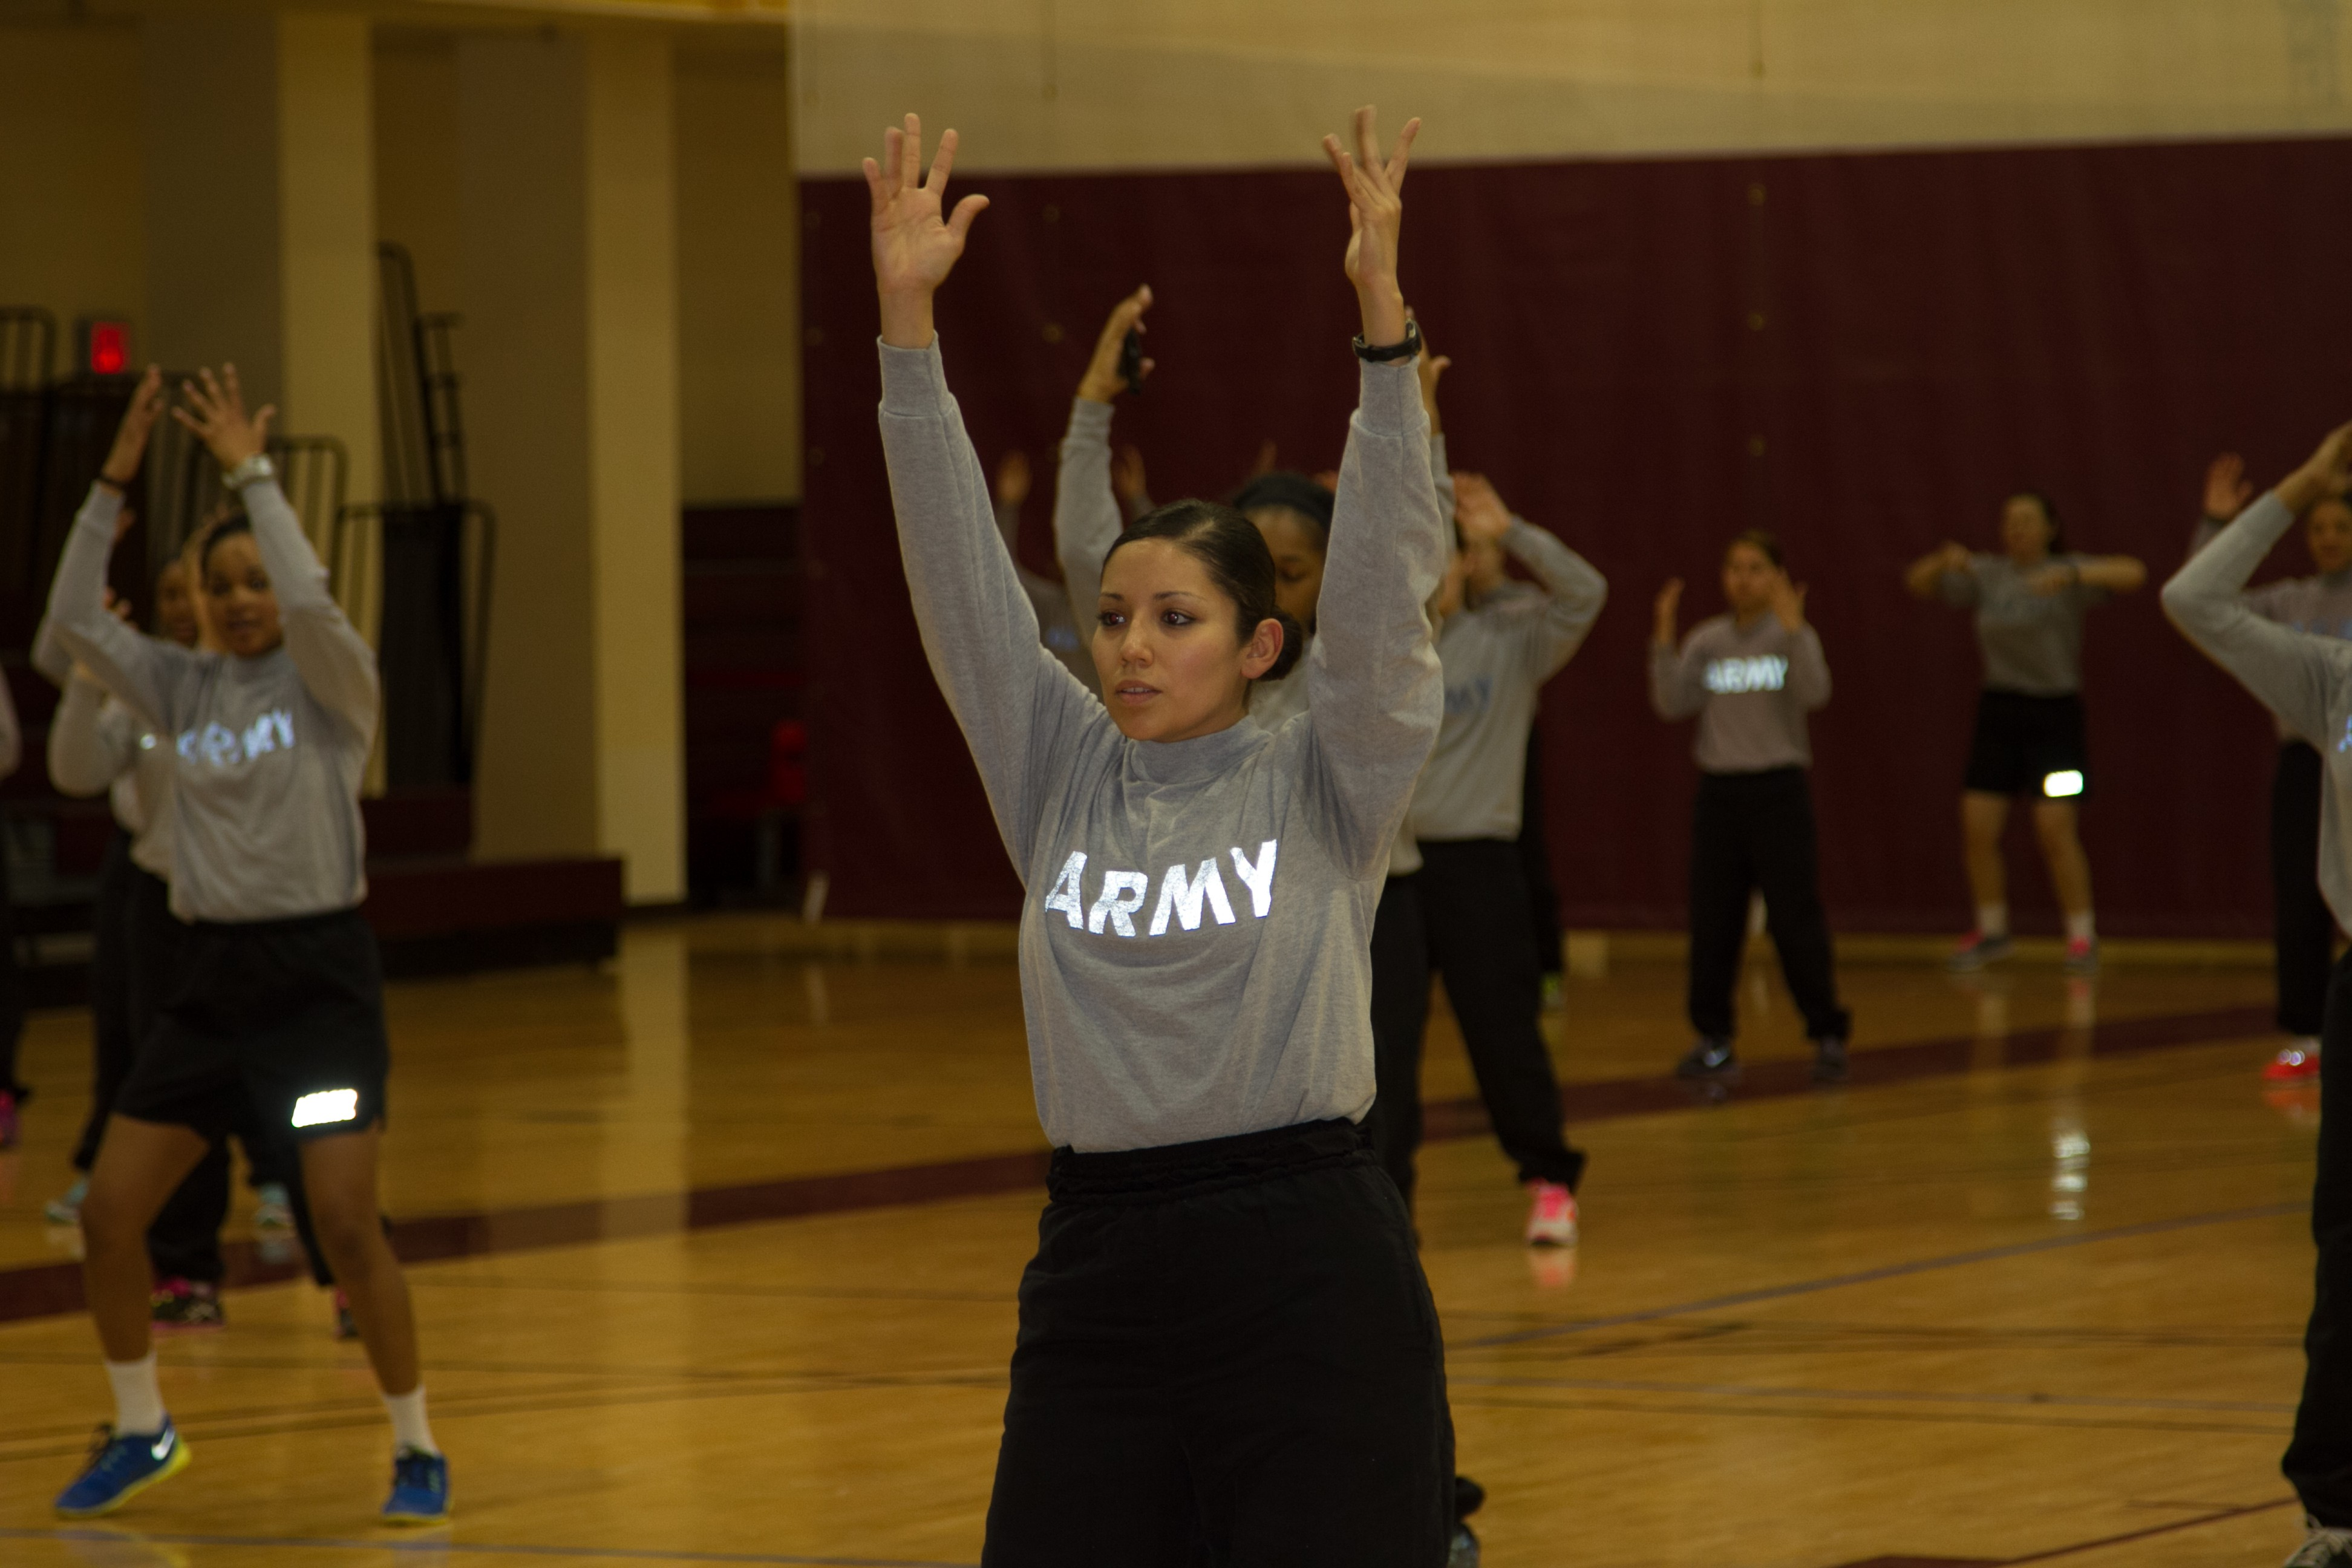 Female Soldiers from 2nd Combat Aviation Brigade perform dance during Zumba class